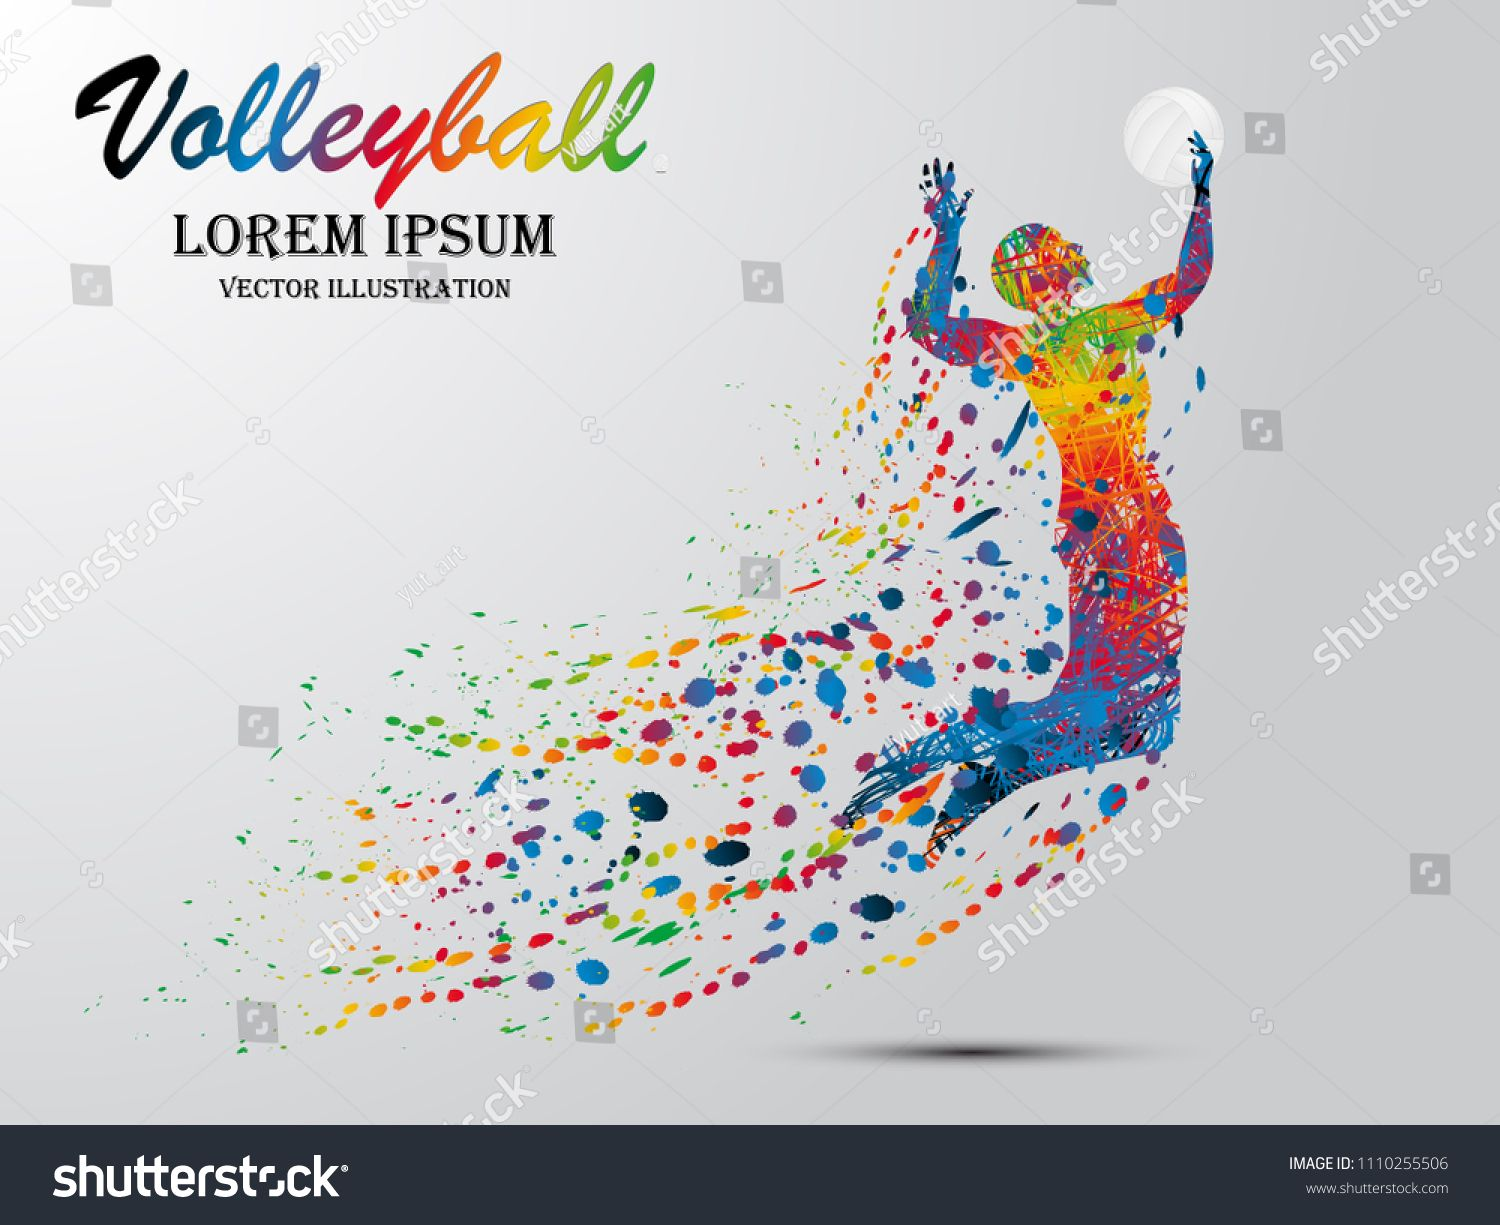 Visual Drawing Volleyball Sport At Fast Of Speed In Game Colorful Beautiful Design Style On White Background Creative Infographic Vector Illustration Drawings